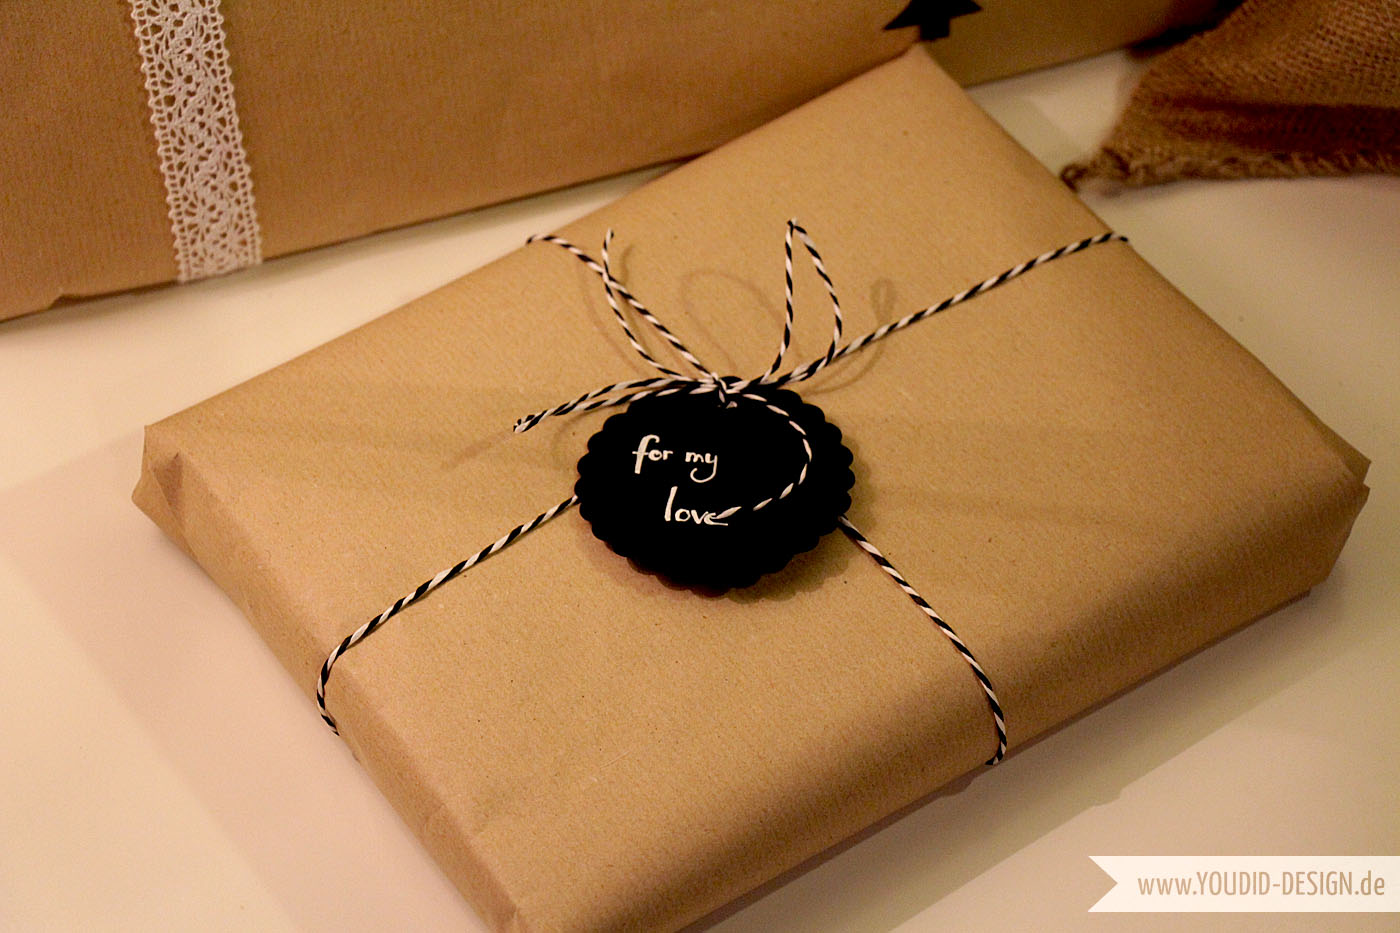 Moderne Geschenke 7 Gift Wrapping Ideas With Kraft Paper - Youdid Design